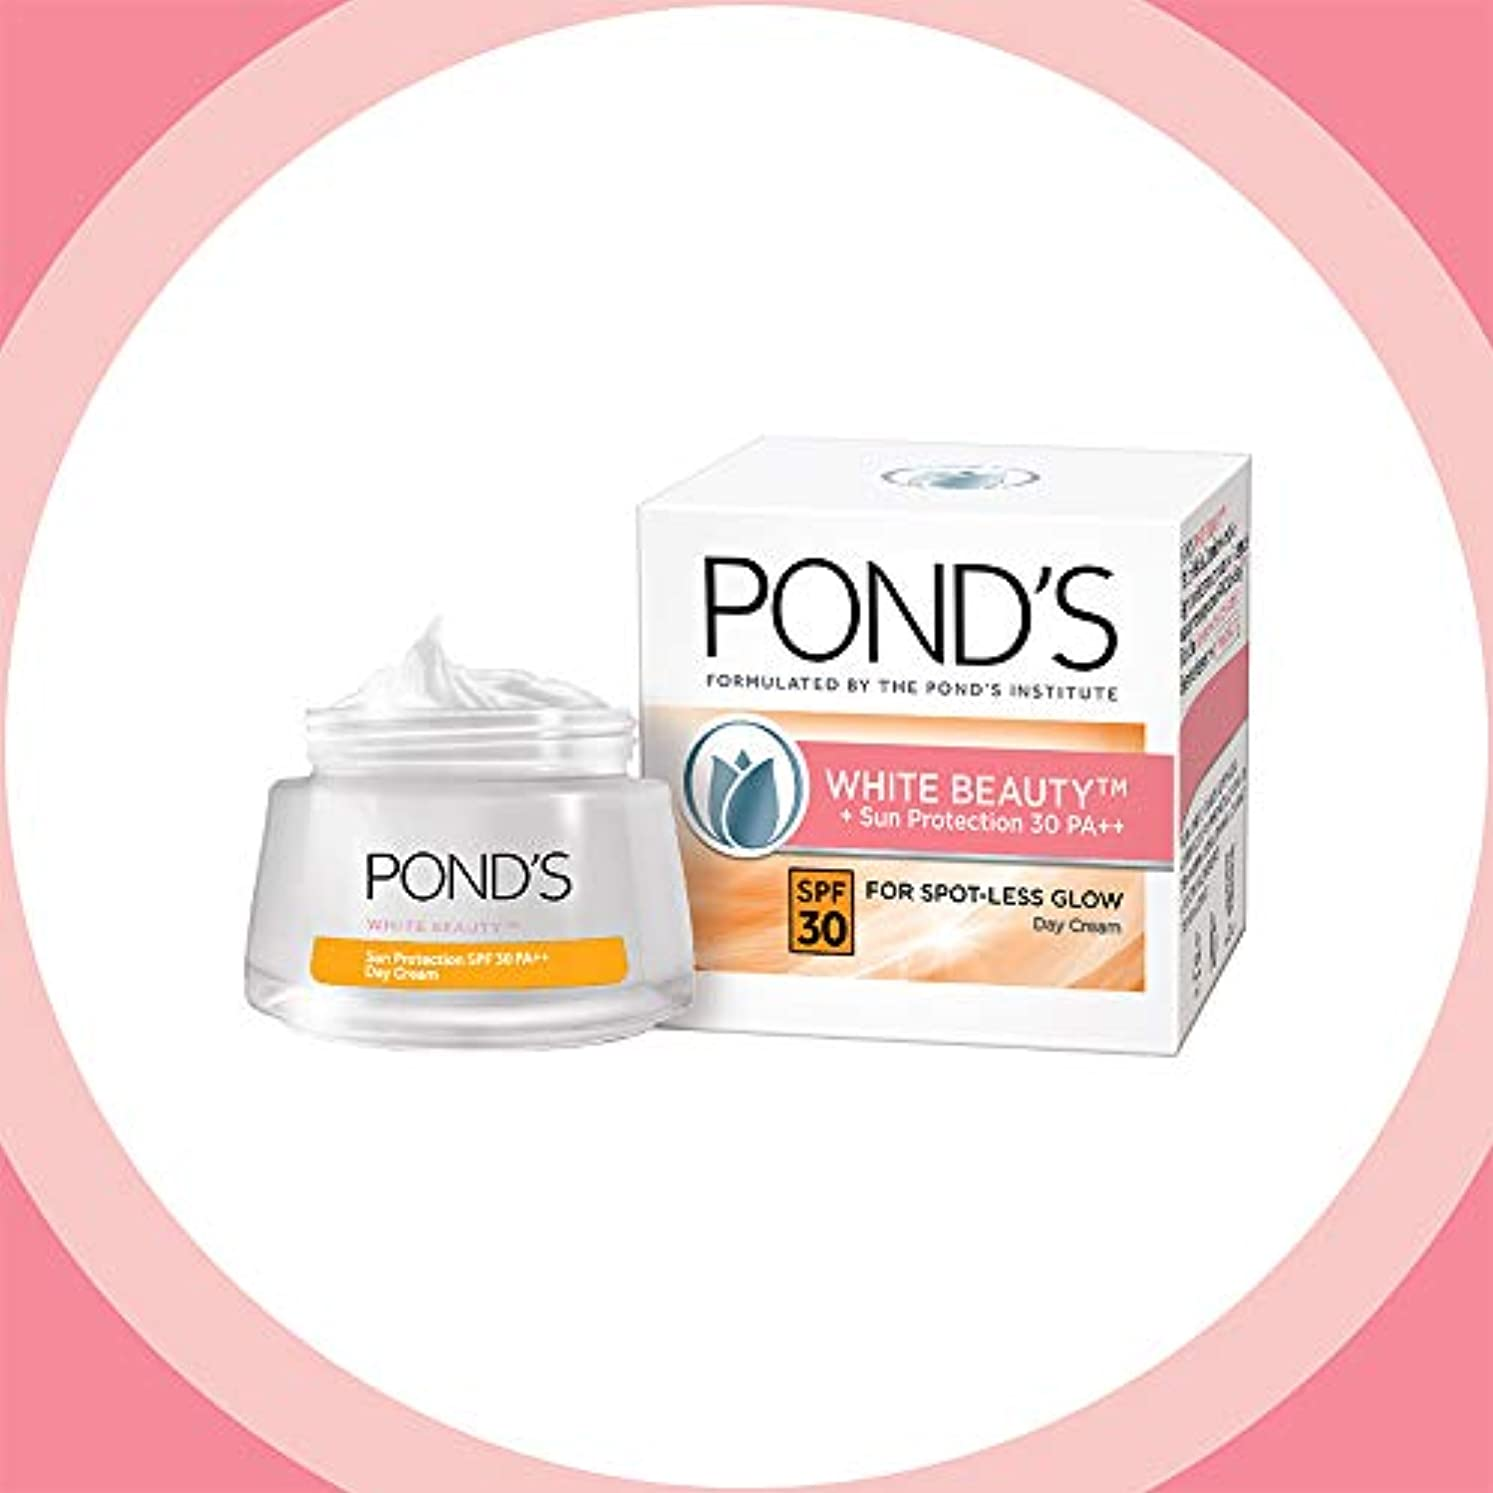 窓保証するクレタPOND'S White Beauty Sun Protection SPF 30 Day Cream, 50 g